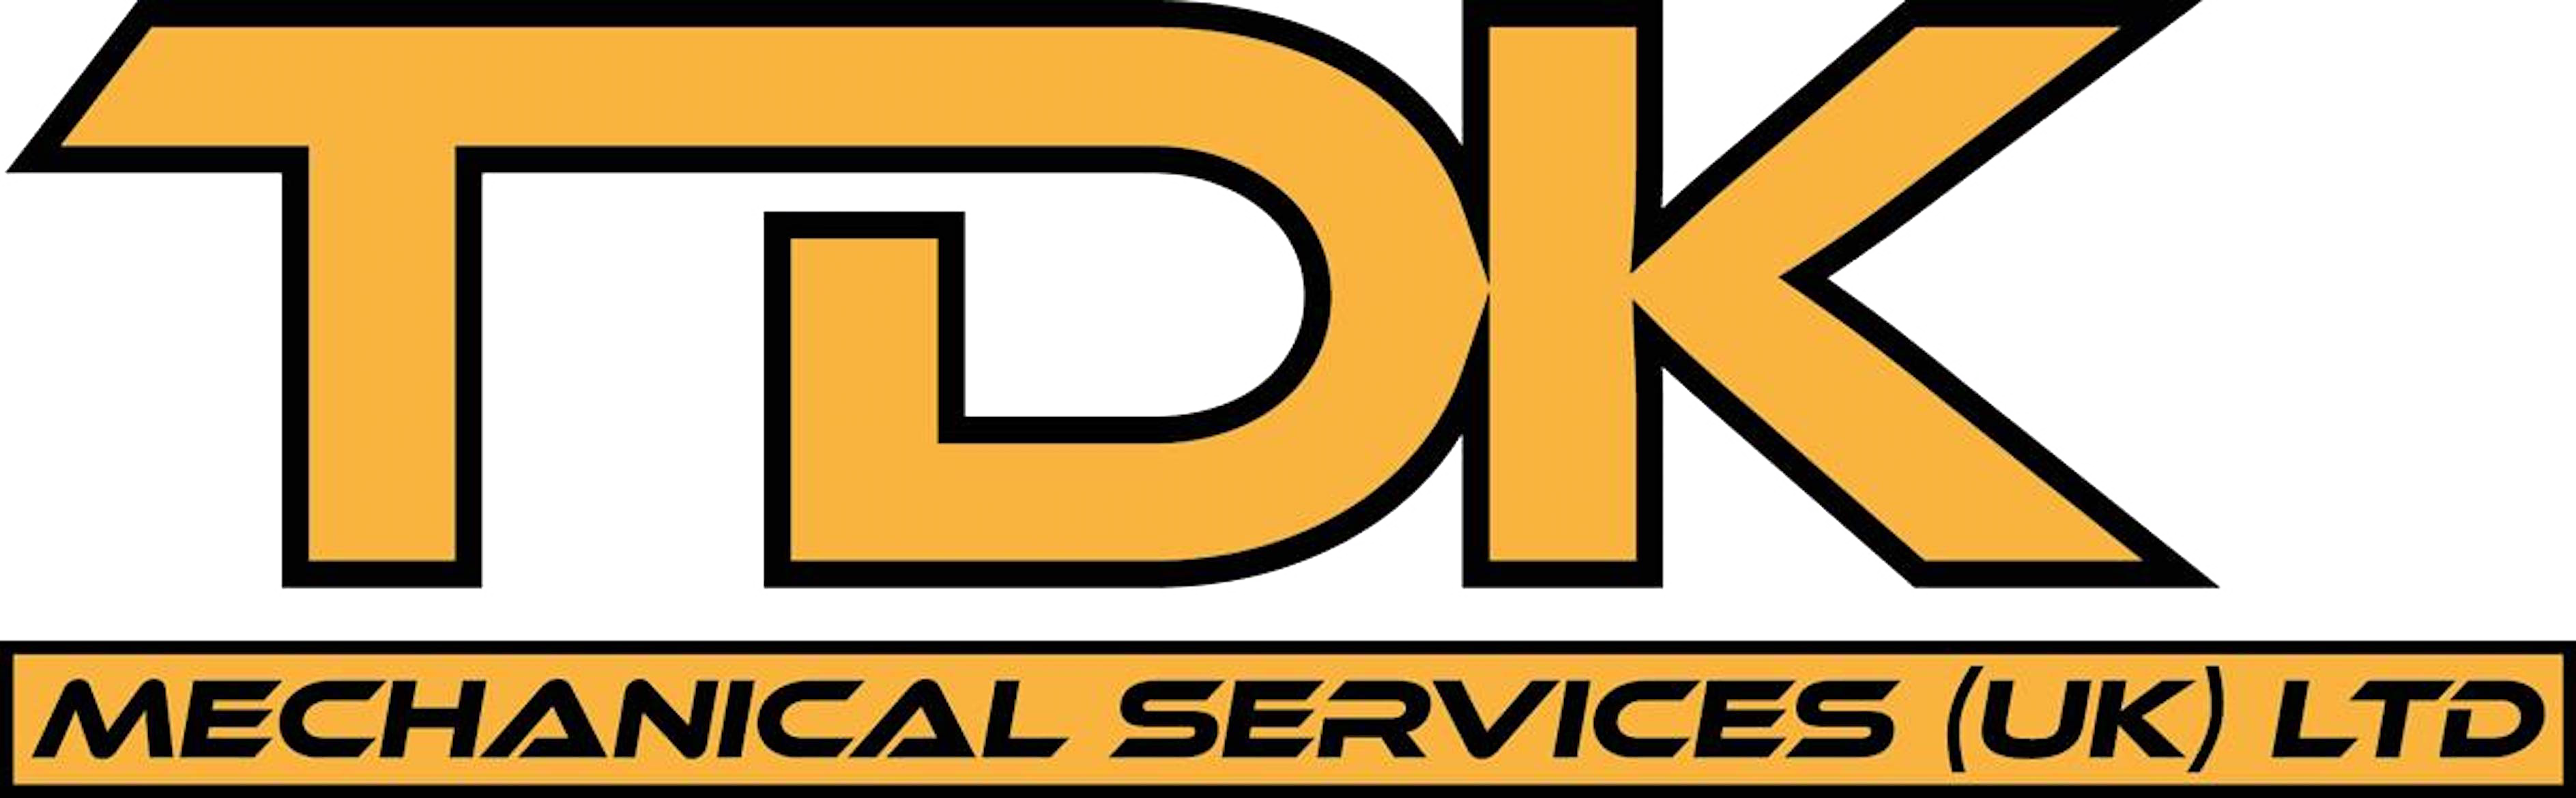 TDK Mechanical Services (UK) Ltd - Just another WordPress site